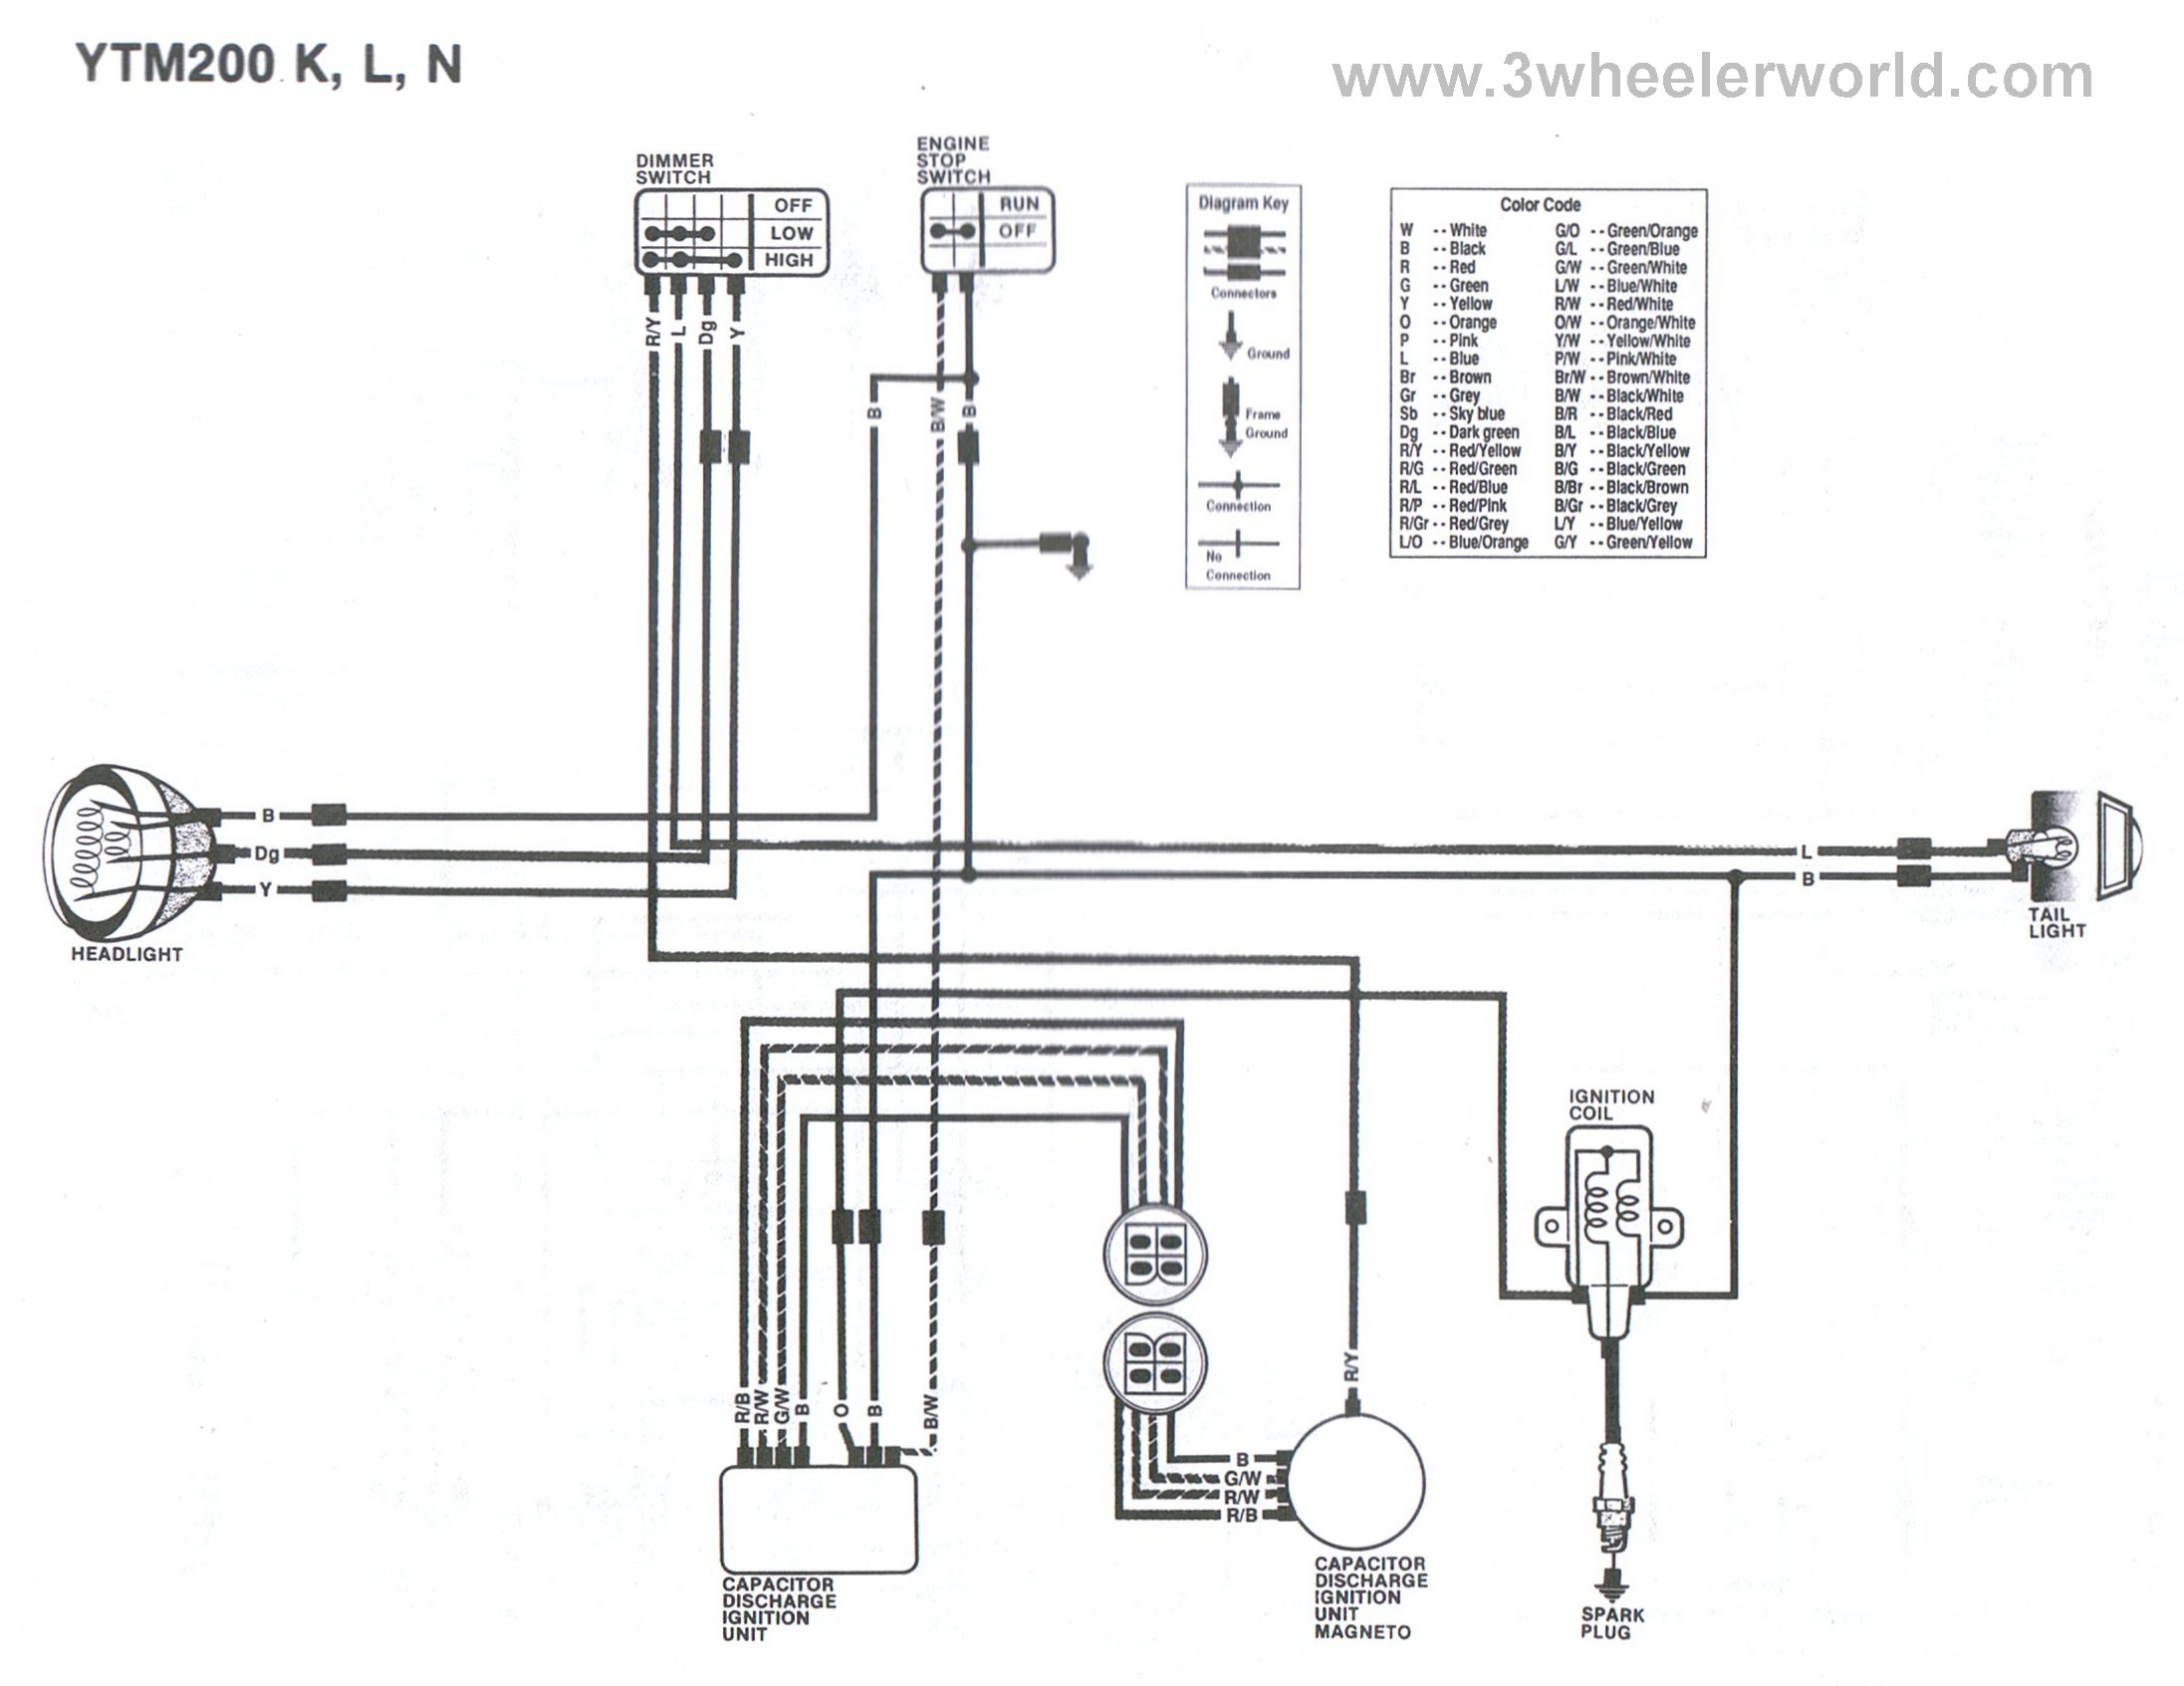 yamaha 225dx engine diagram yamaha wiring diagrams online